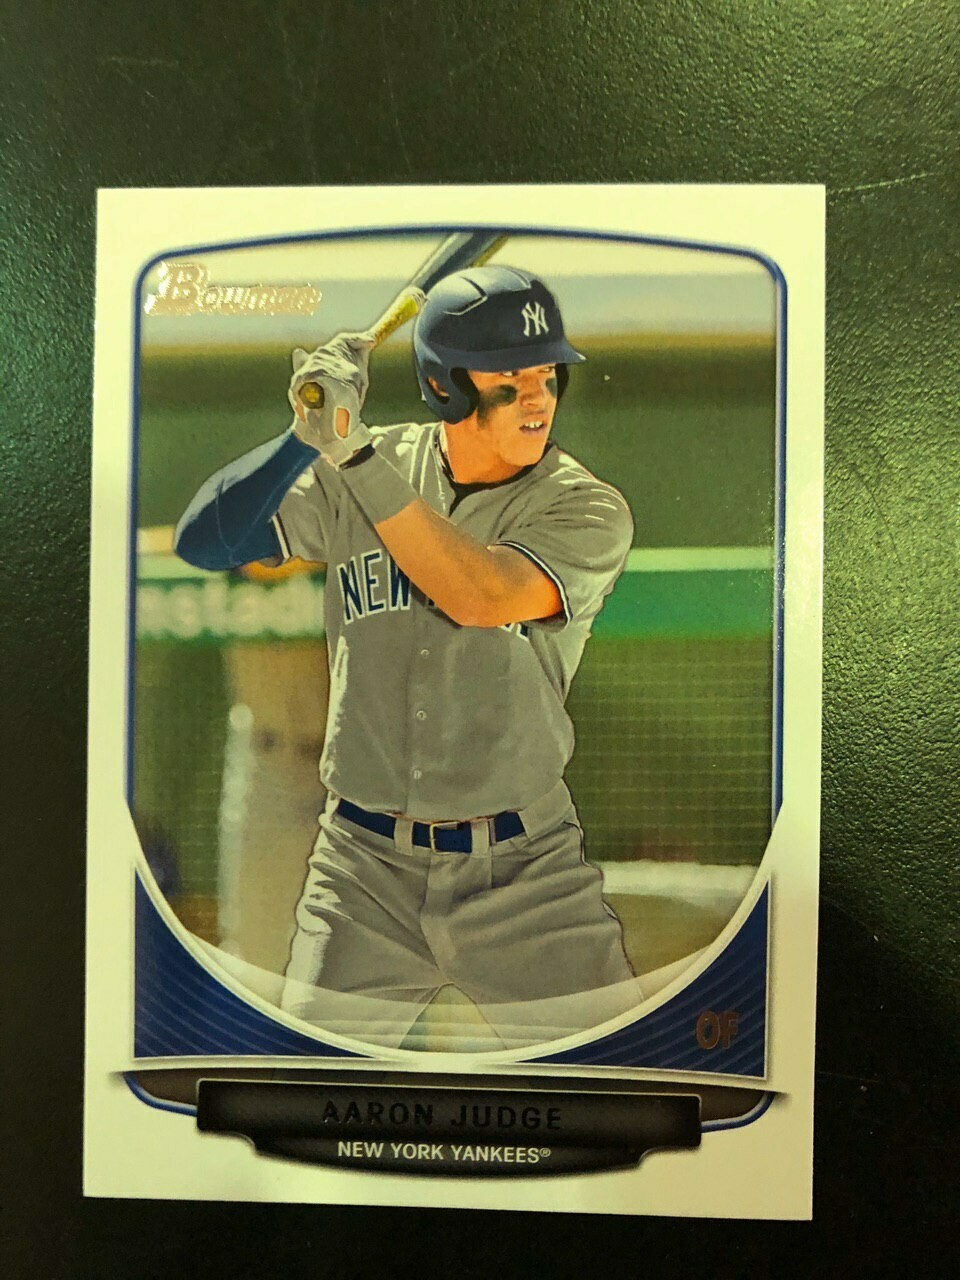 2013 Bowman Aaron Judge rookie, $40